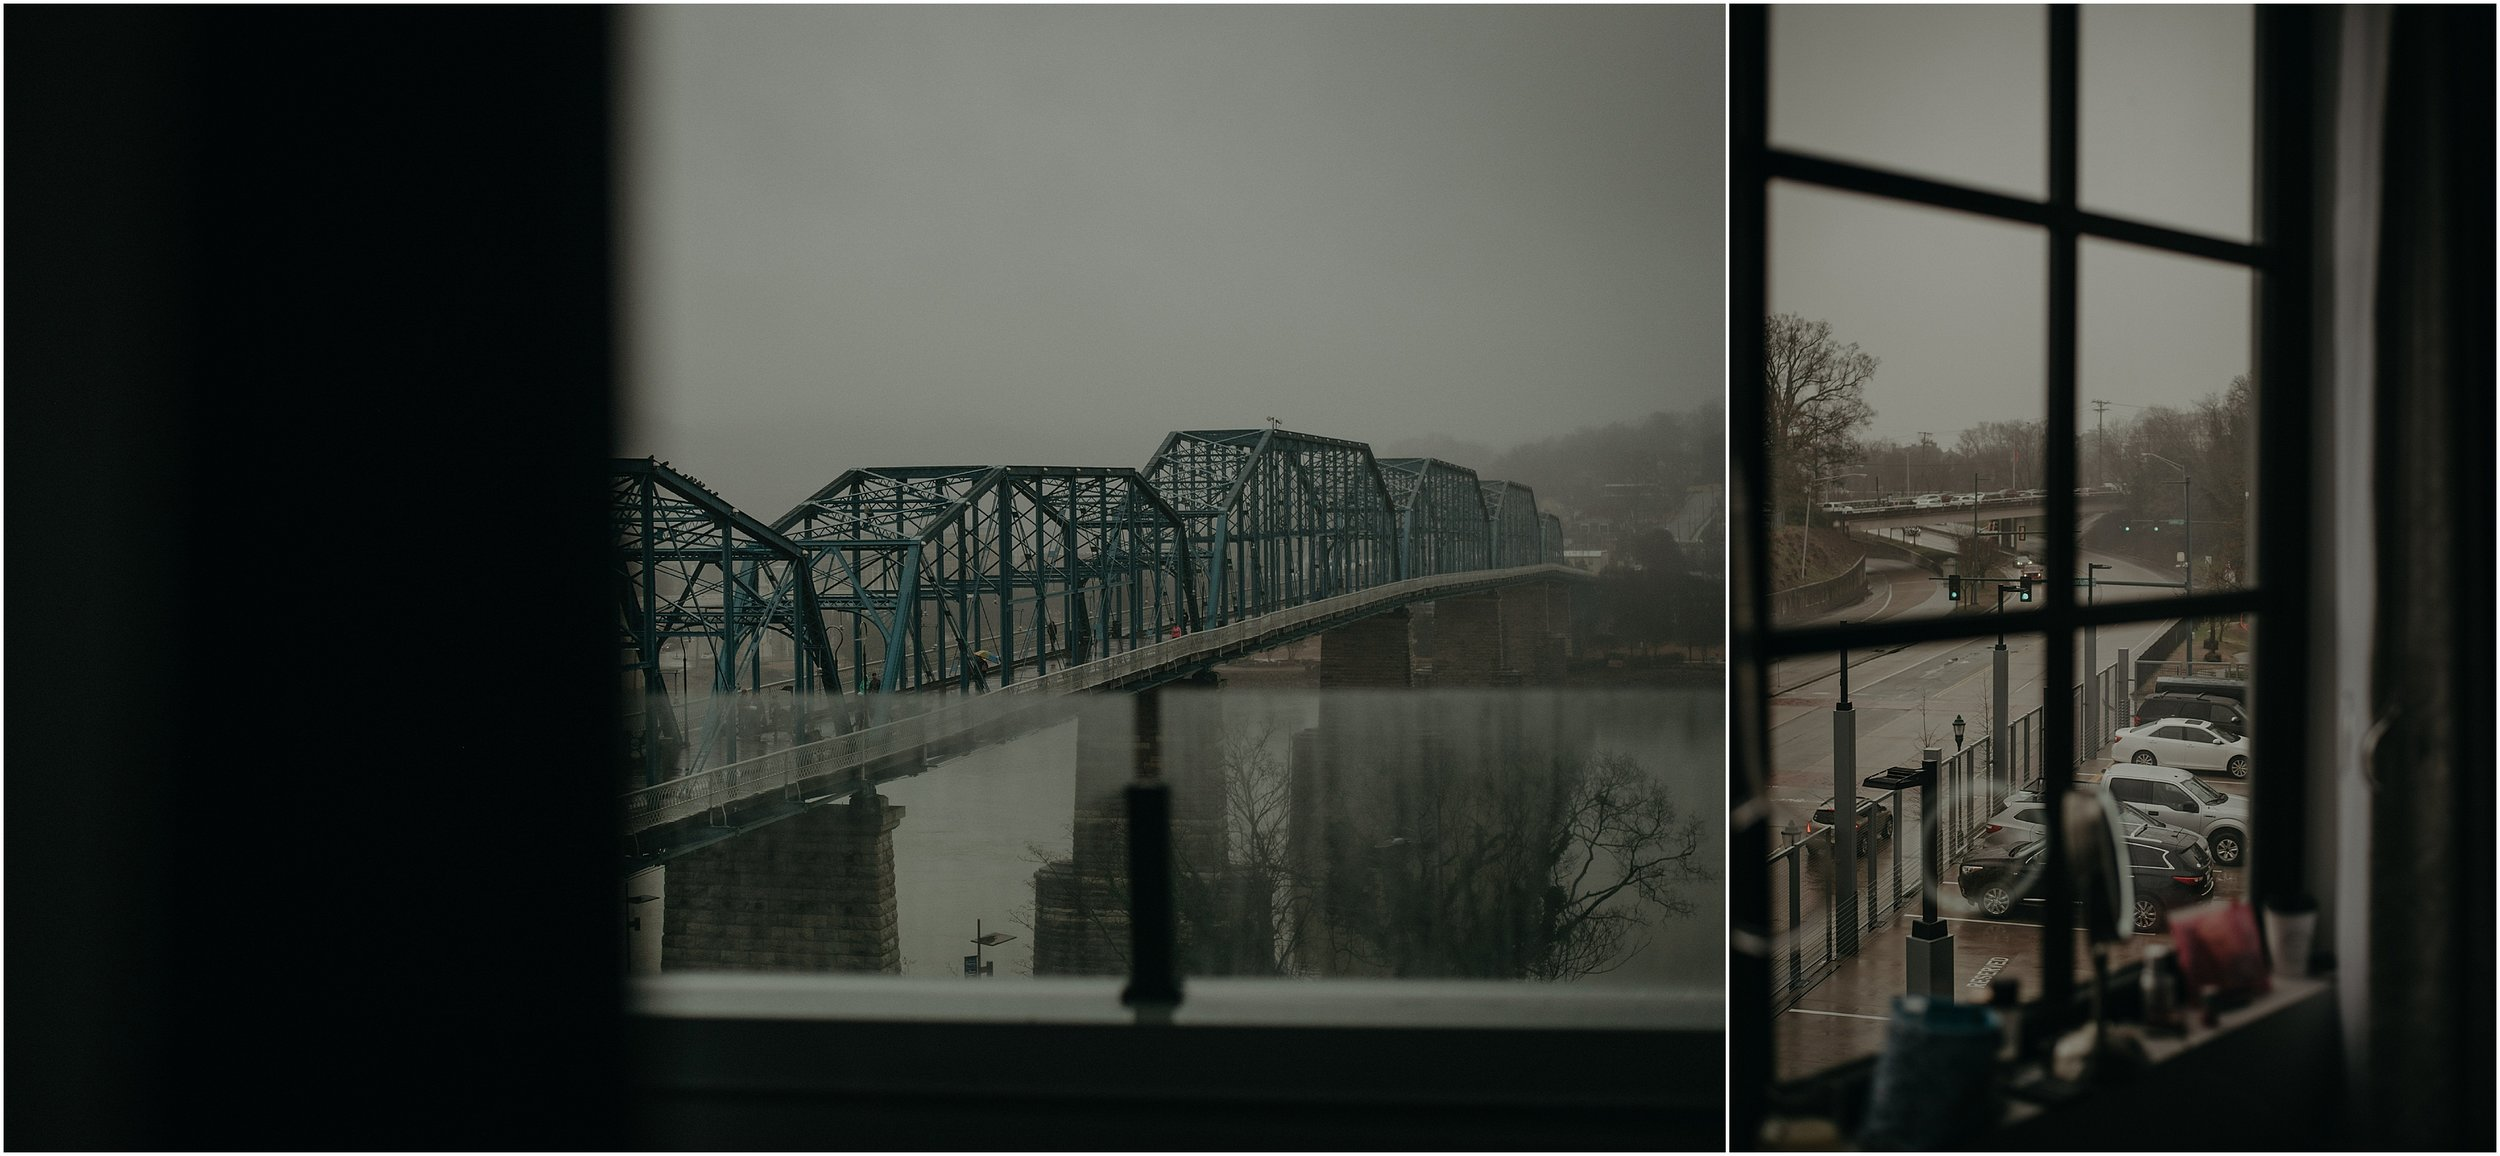 Rainy window views of the Walnut Street Bridge in downtown Chattanooga, TN